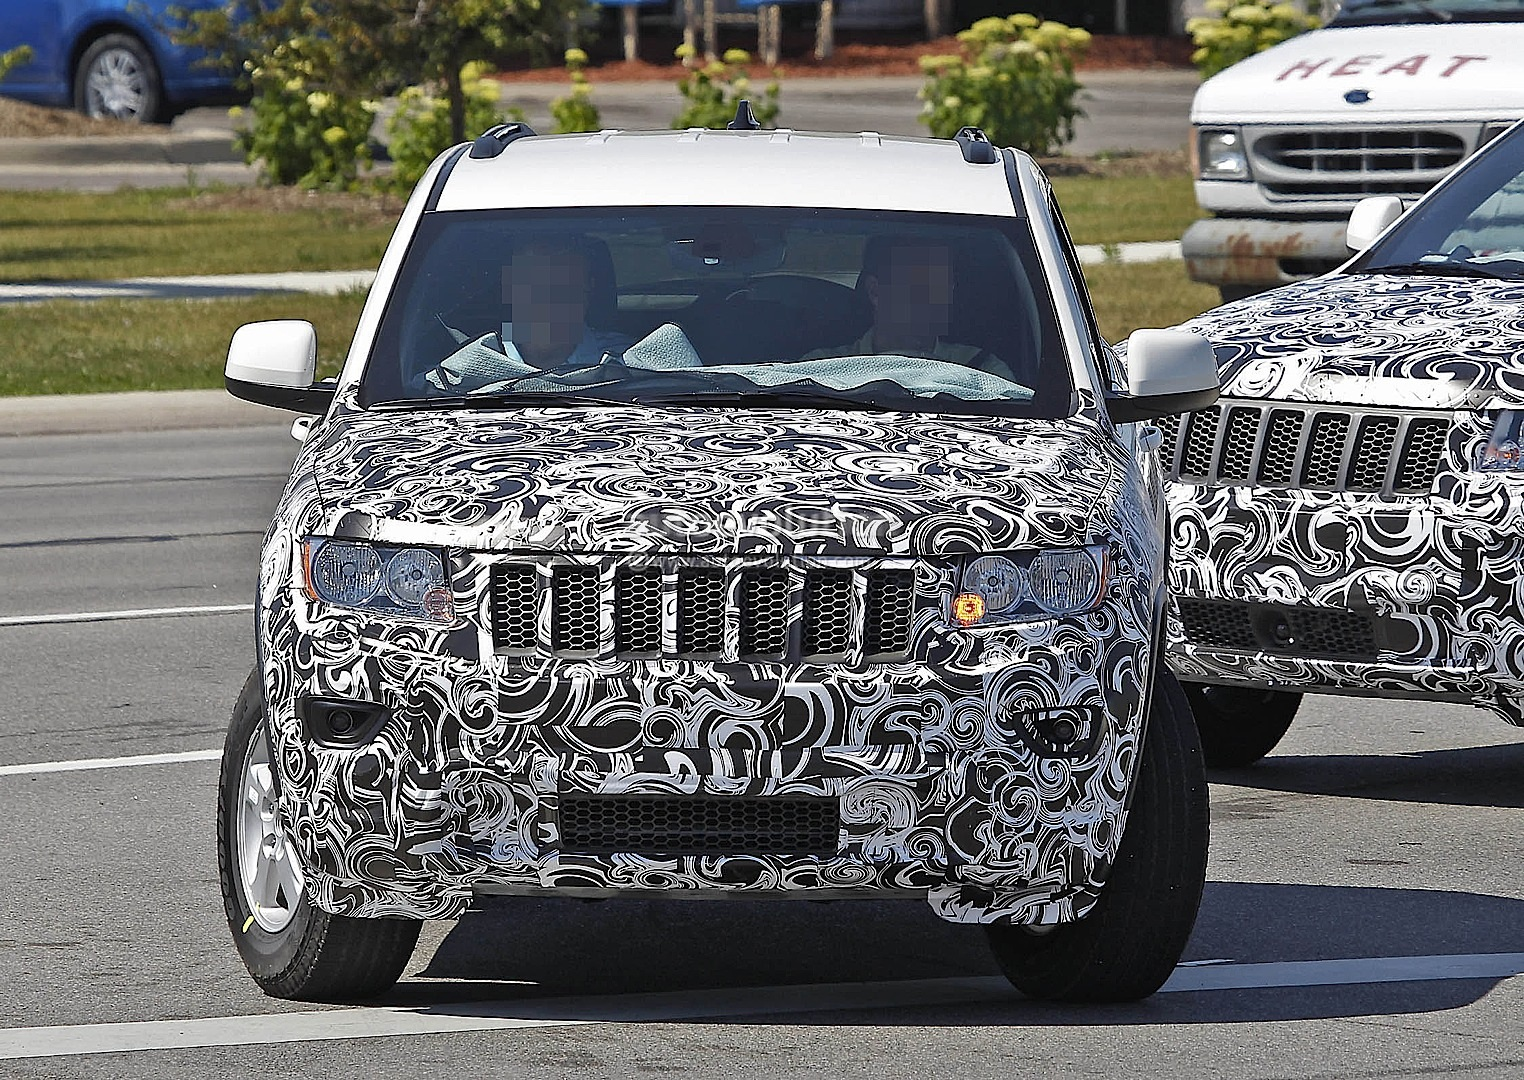 2014 Jeep Grand Cherokee Facelift #4/7